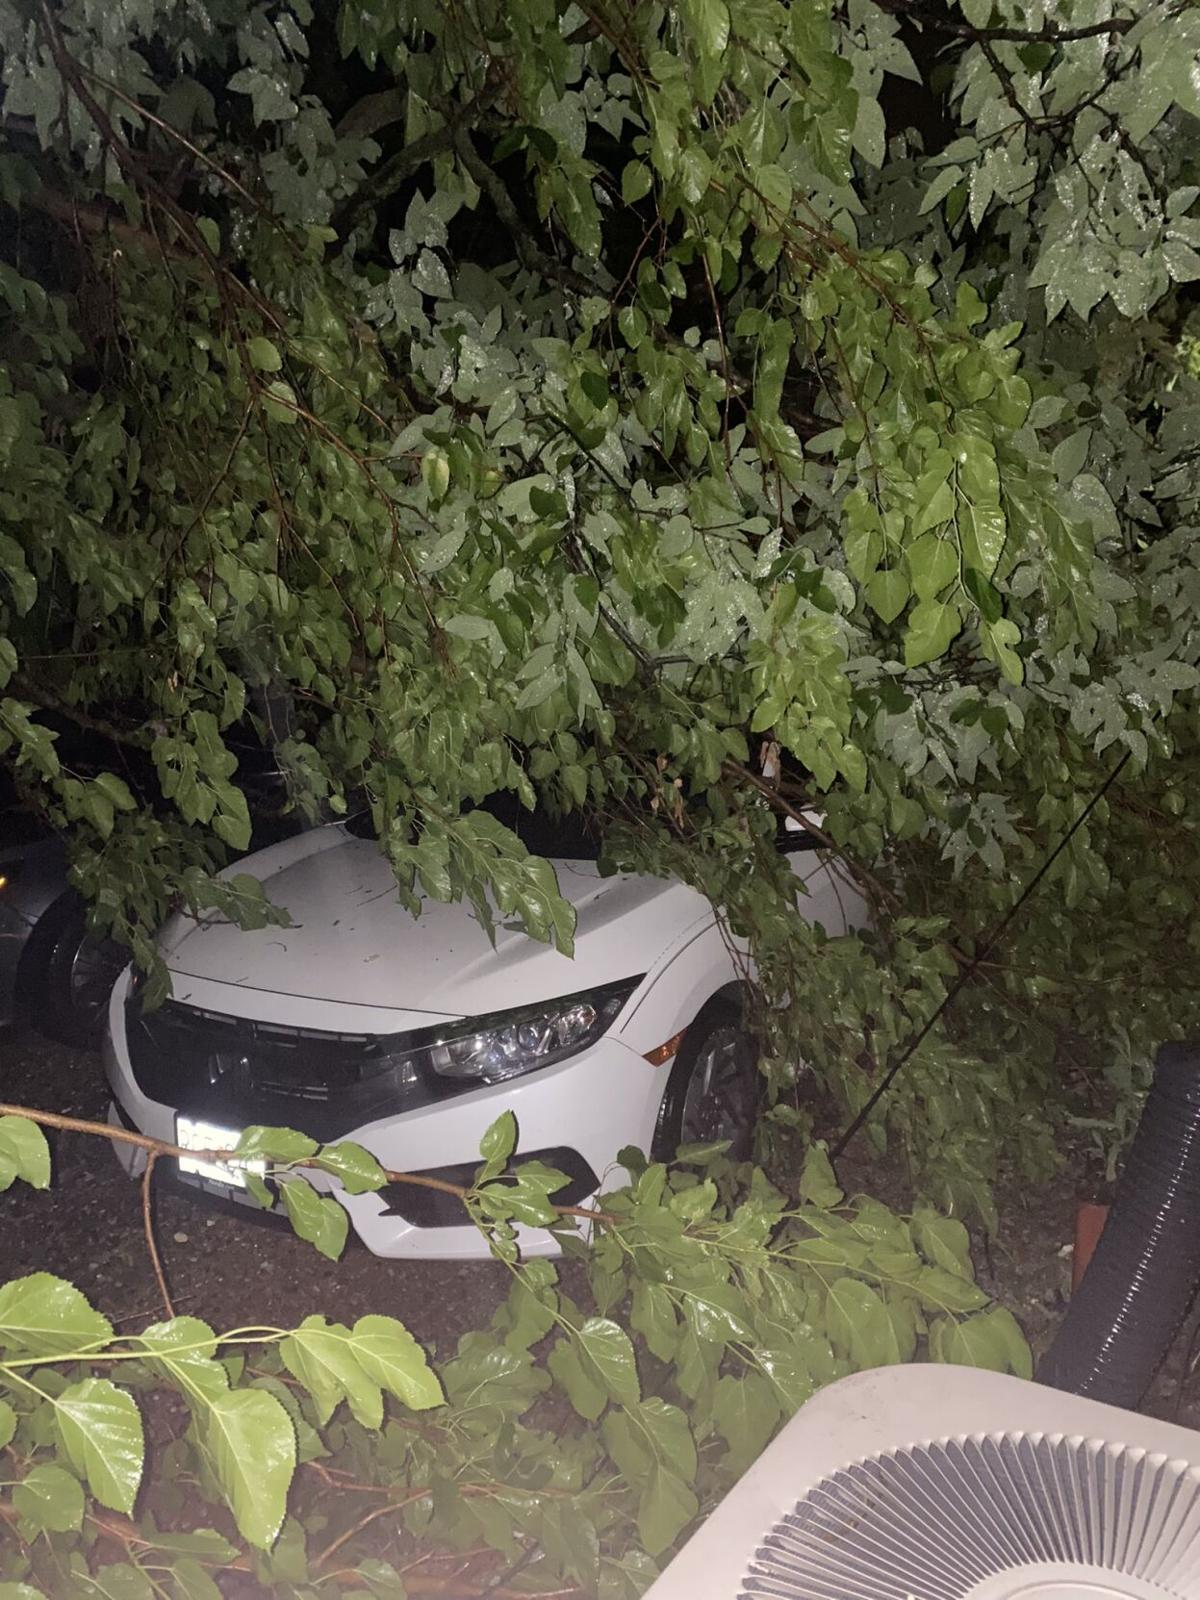 Vehicle affected from fallen tree, 2 of 2